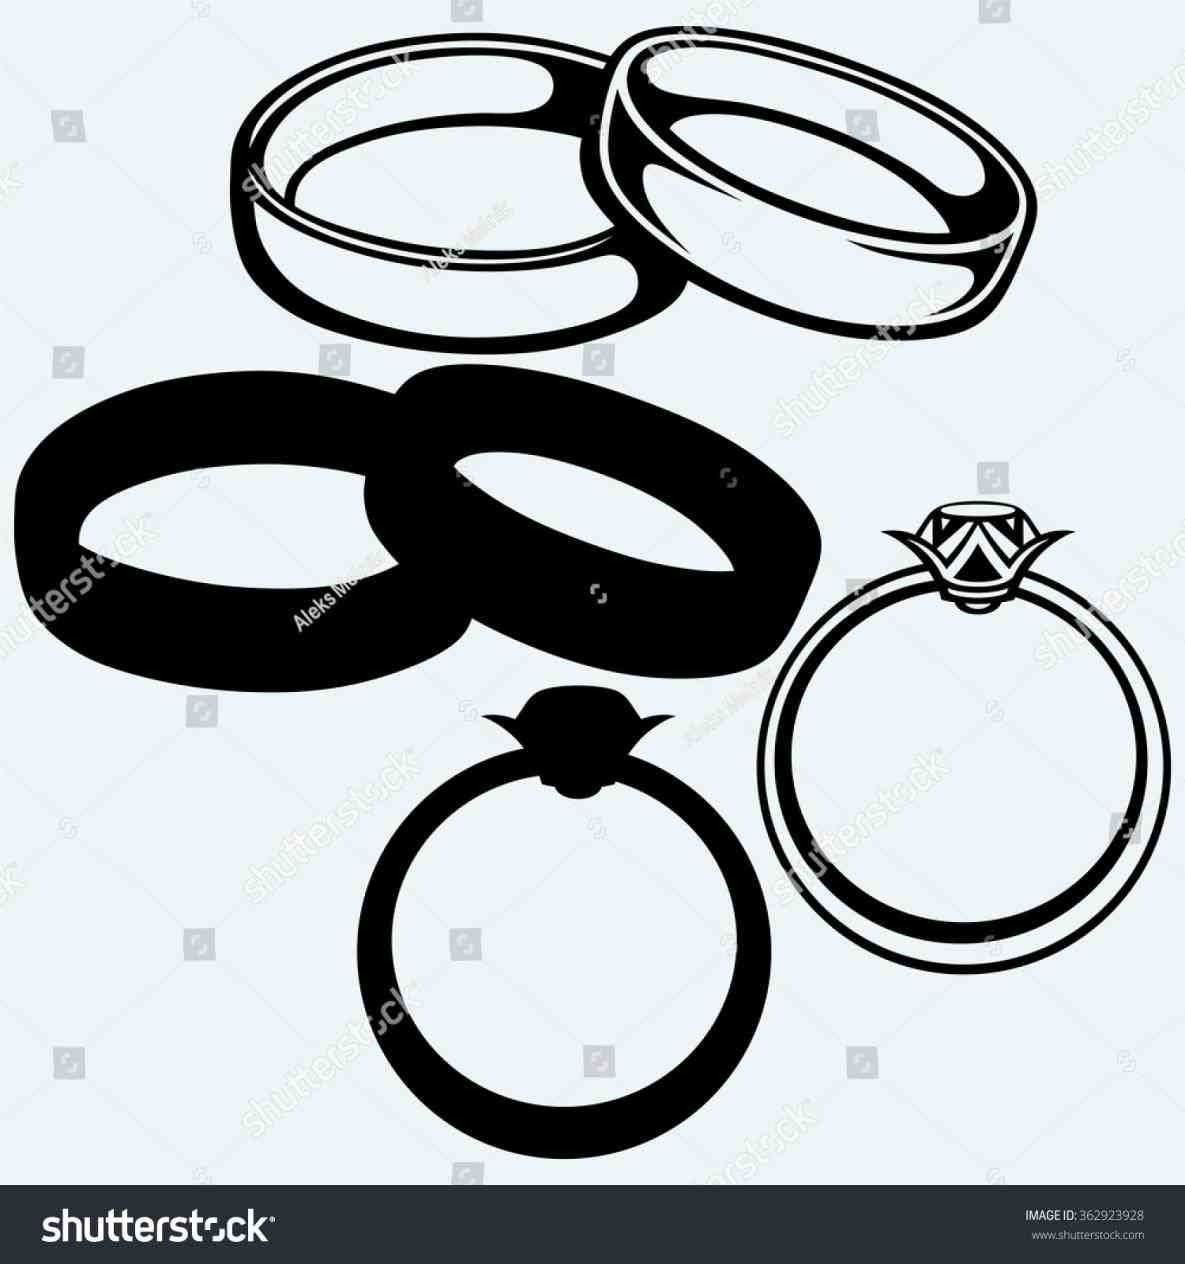 1185x1264 Silhouette Transparent Background Clipartxtras Marriage Vector Png